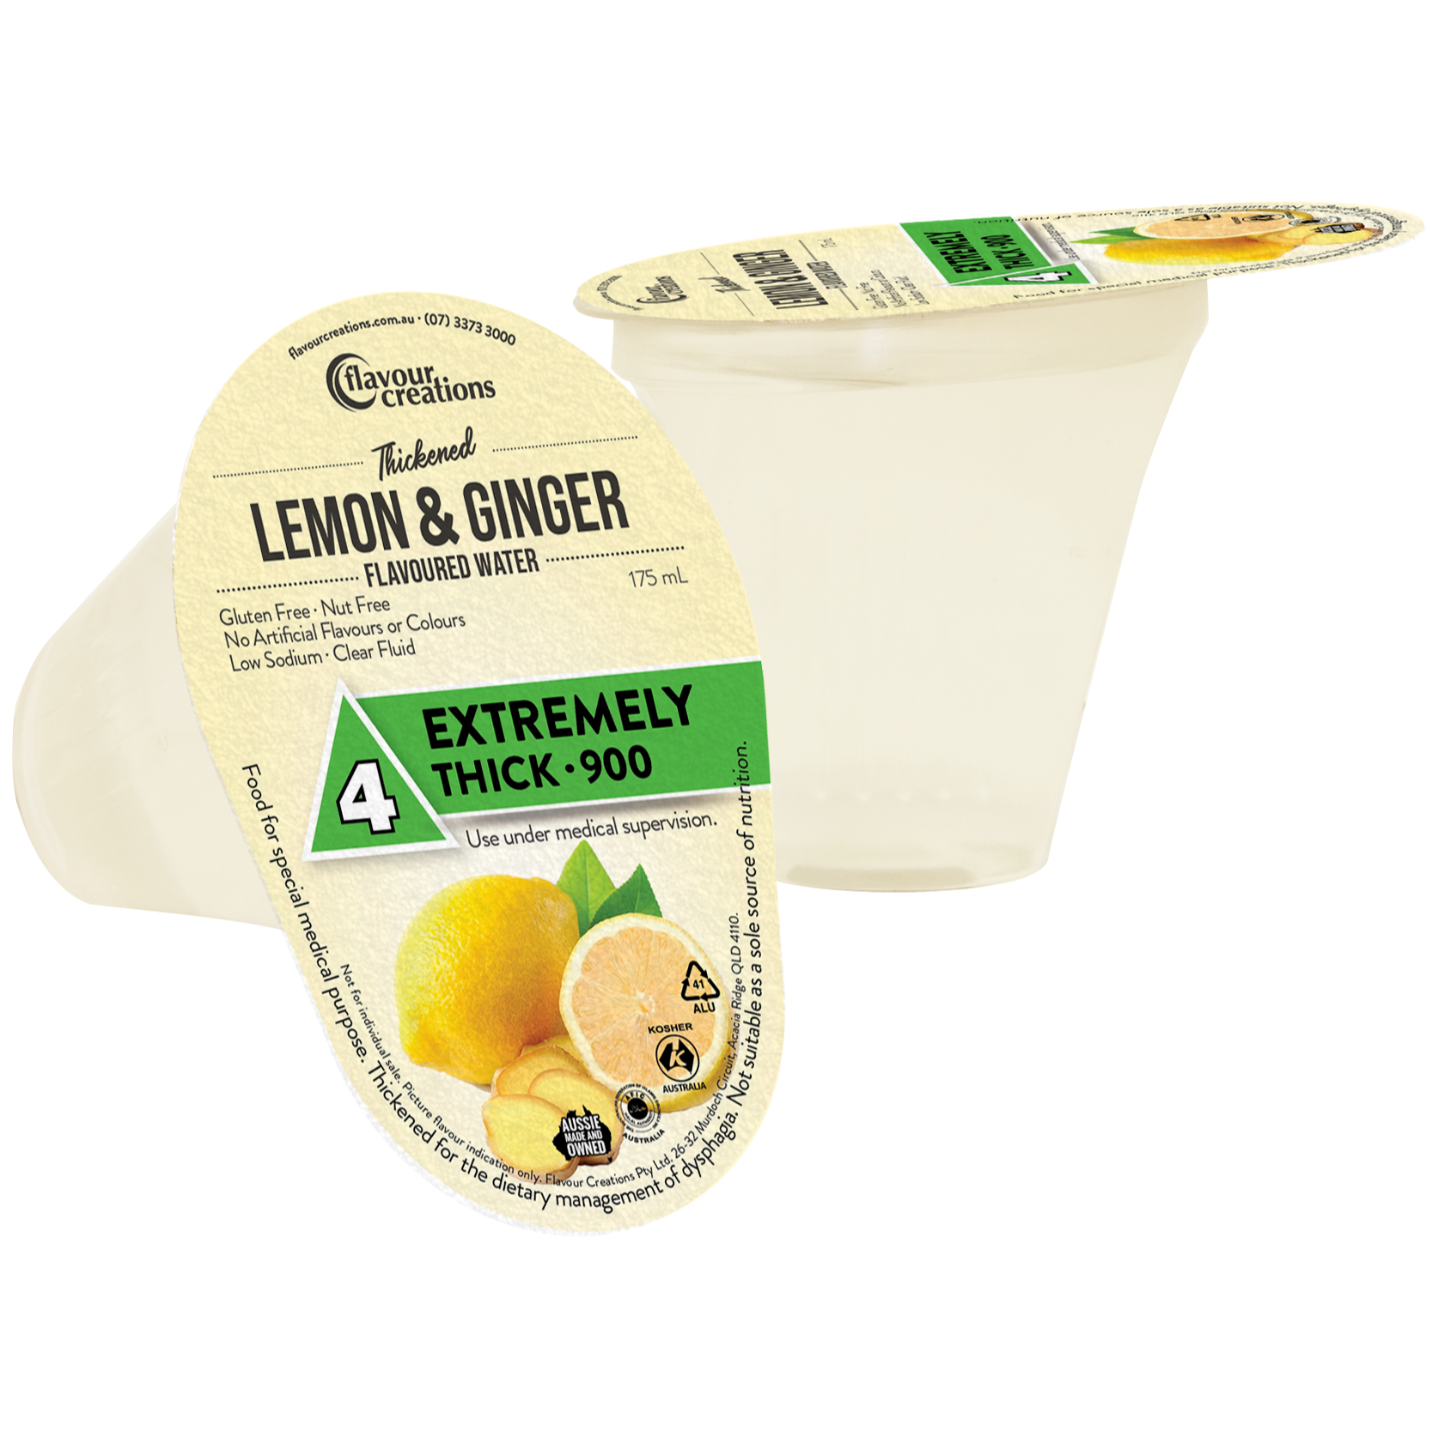 Lemon & Ginger Water Level 4 Extremely Thick 900